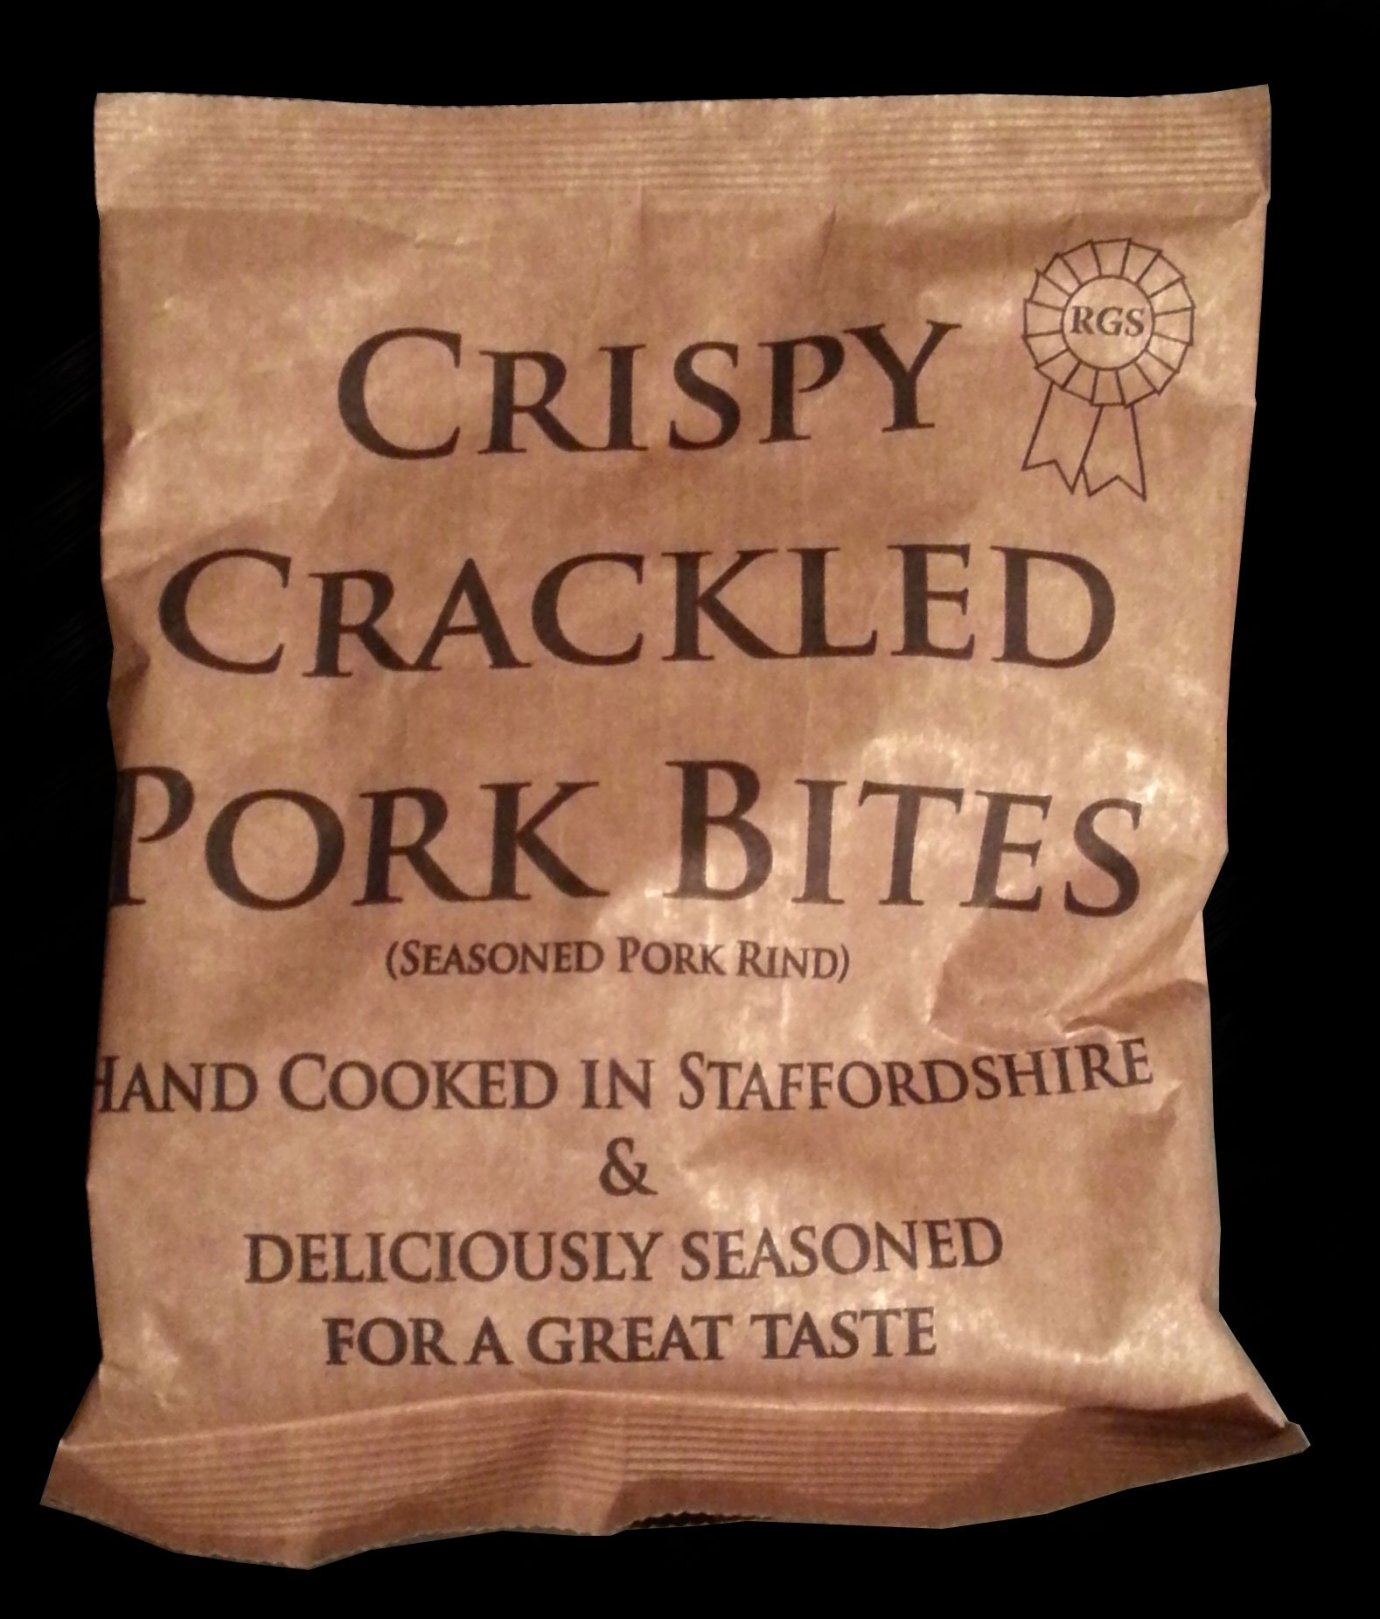 RGS Crispy Crackled Pork Bites Review - RGS, Crispy Crackled Pork Bites Review